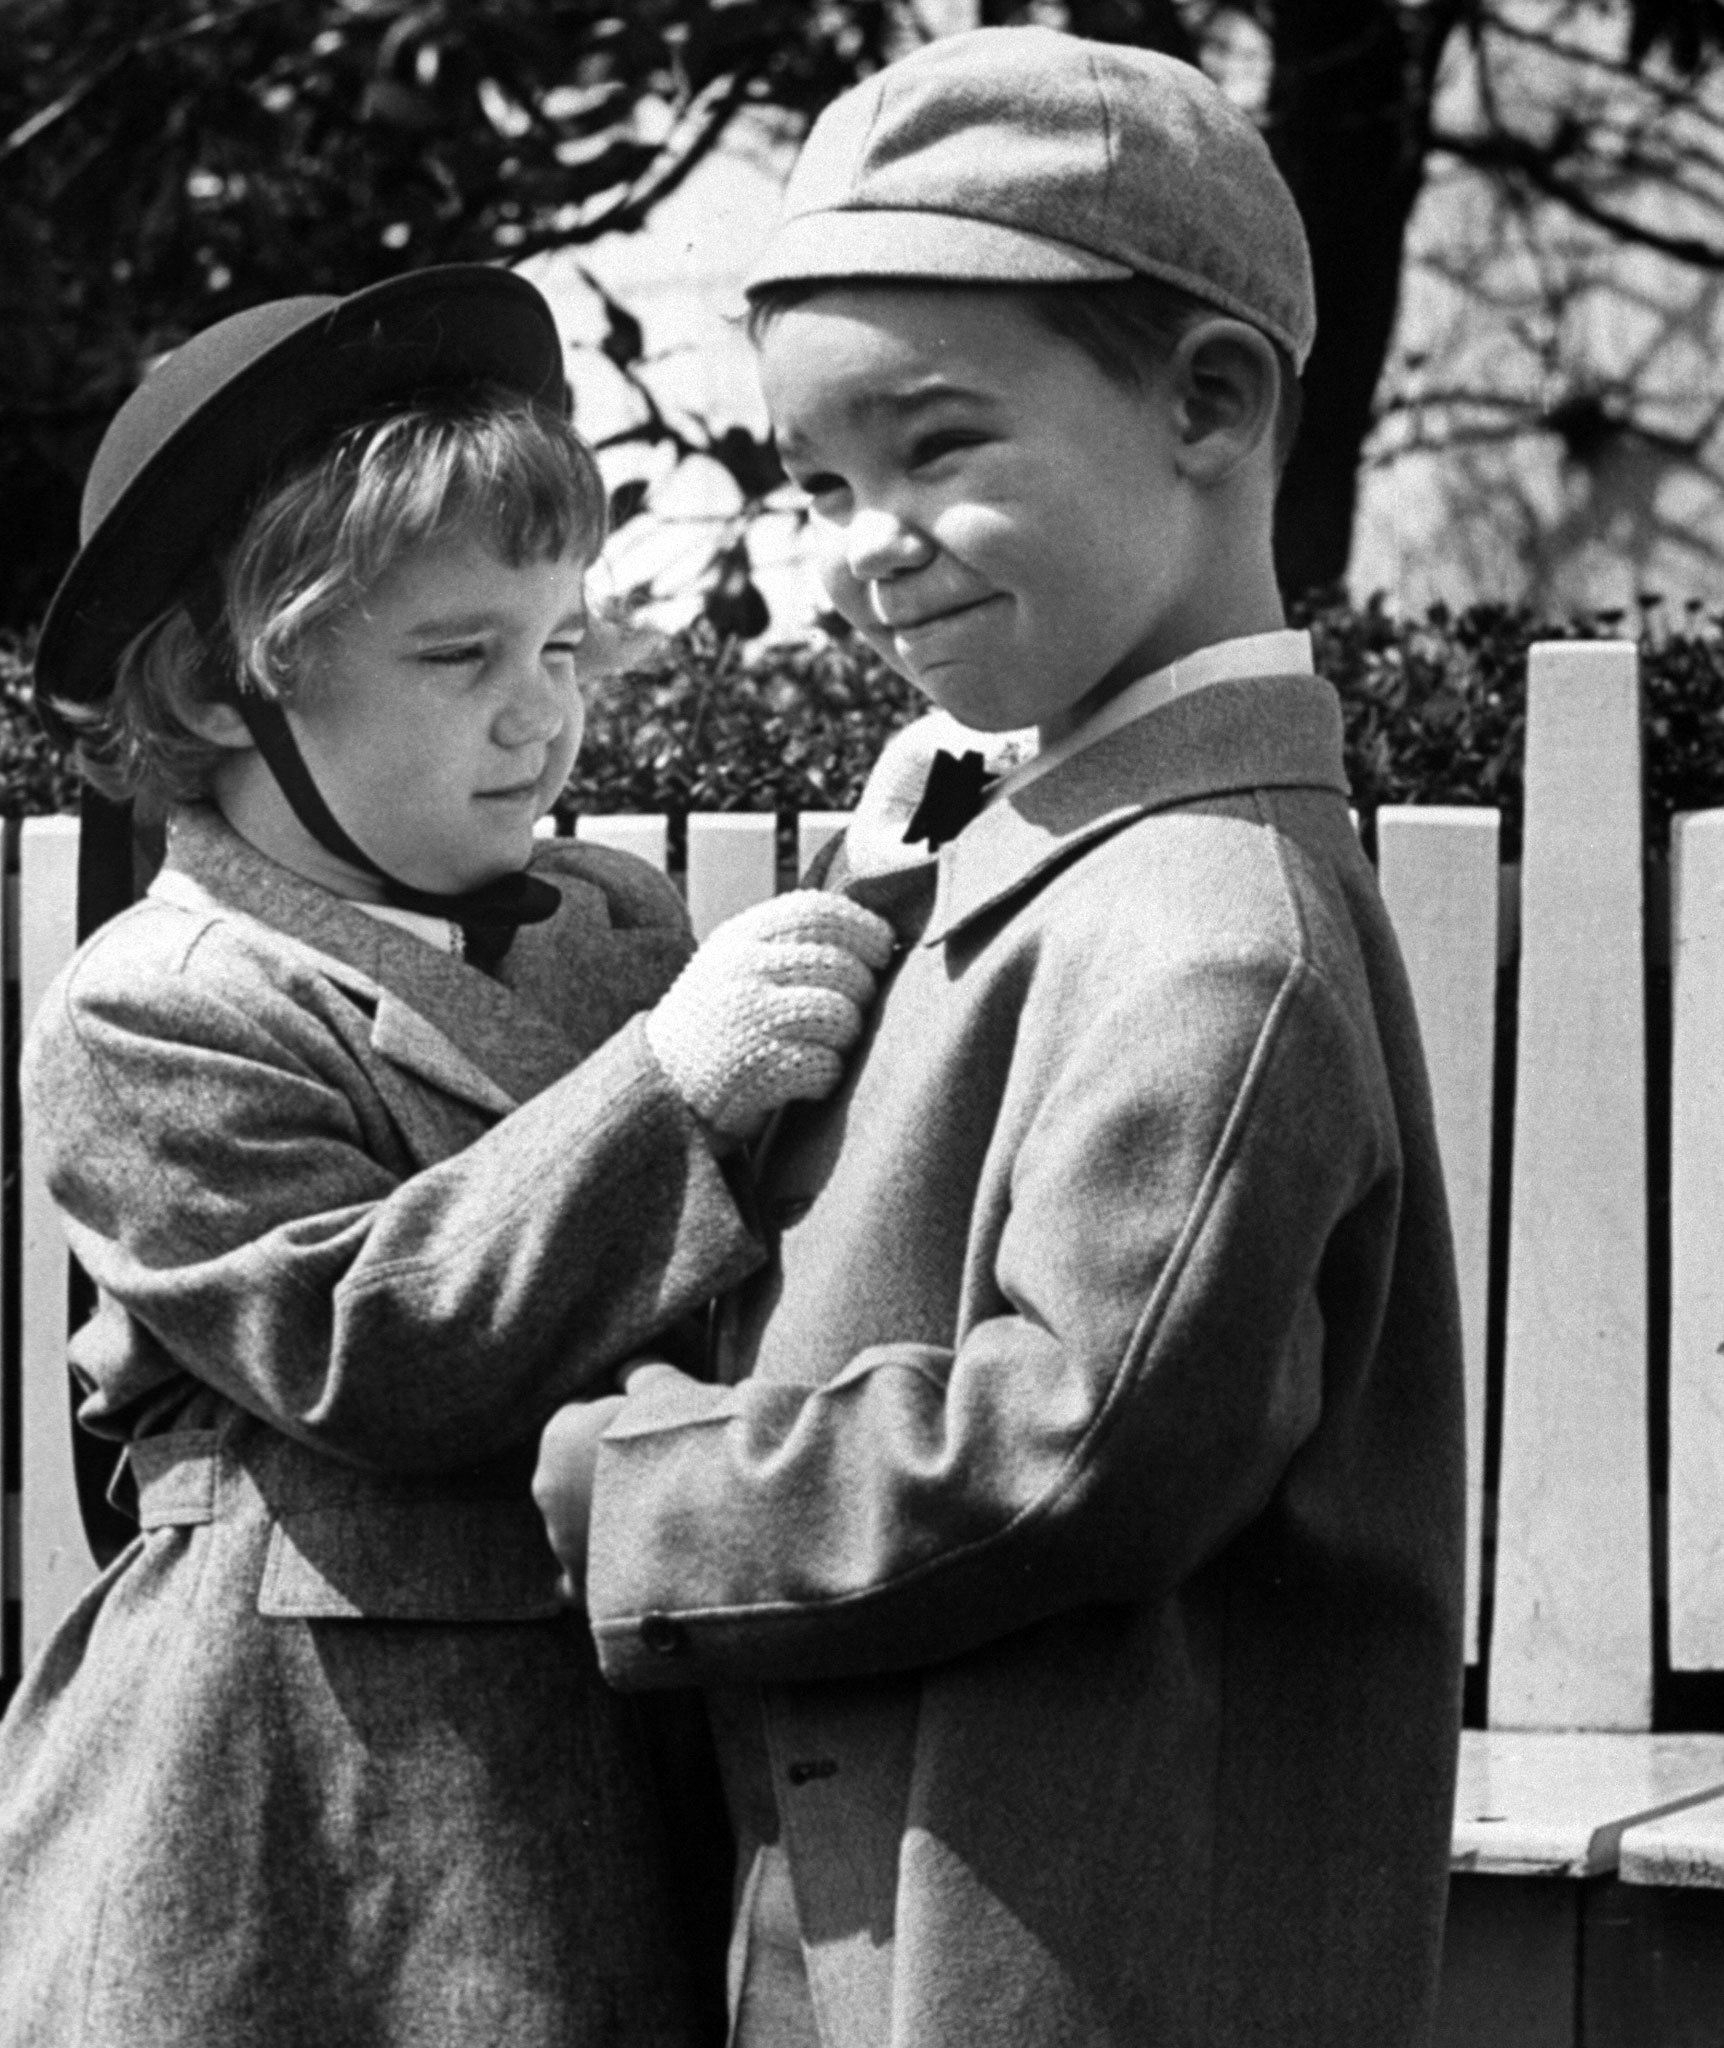 <b>Caption from LIFE.</b> Sisterly touch is given David Eisenhower's collar by his sister Barbara. Their little sister Susan who is only 1, was too young to attend the egg rolling.